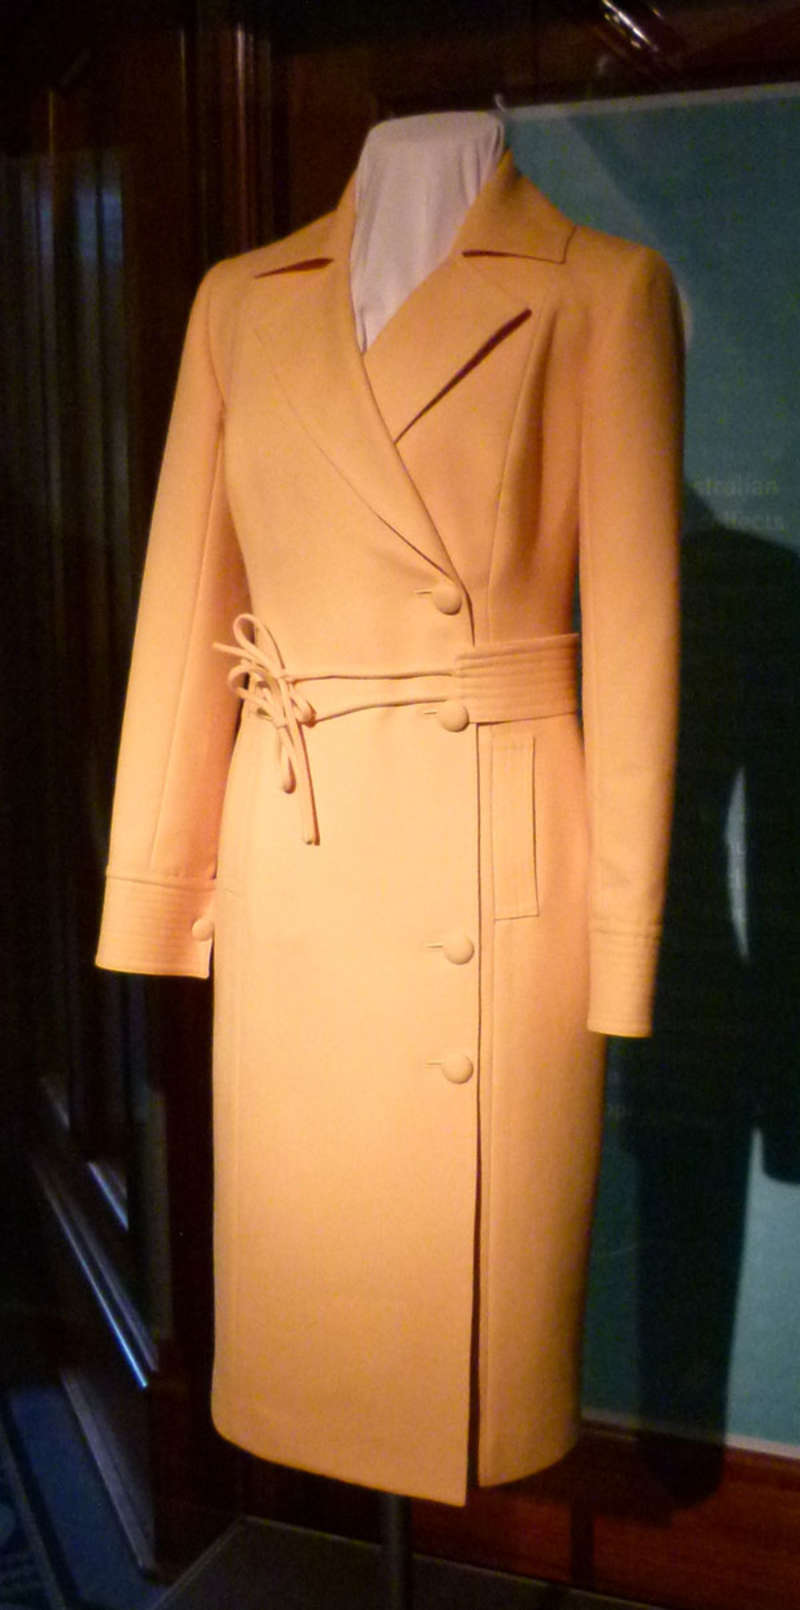 Suit donated by Governor General Quentin Bryce